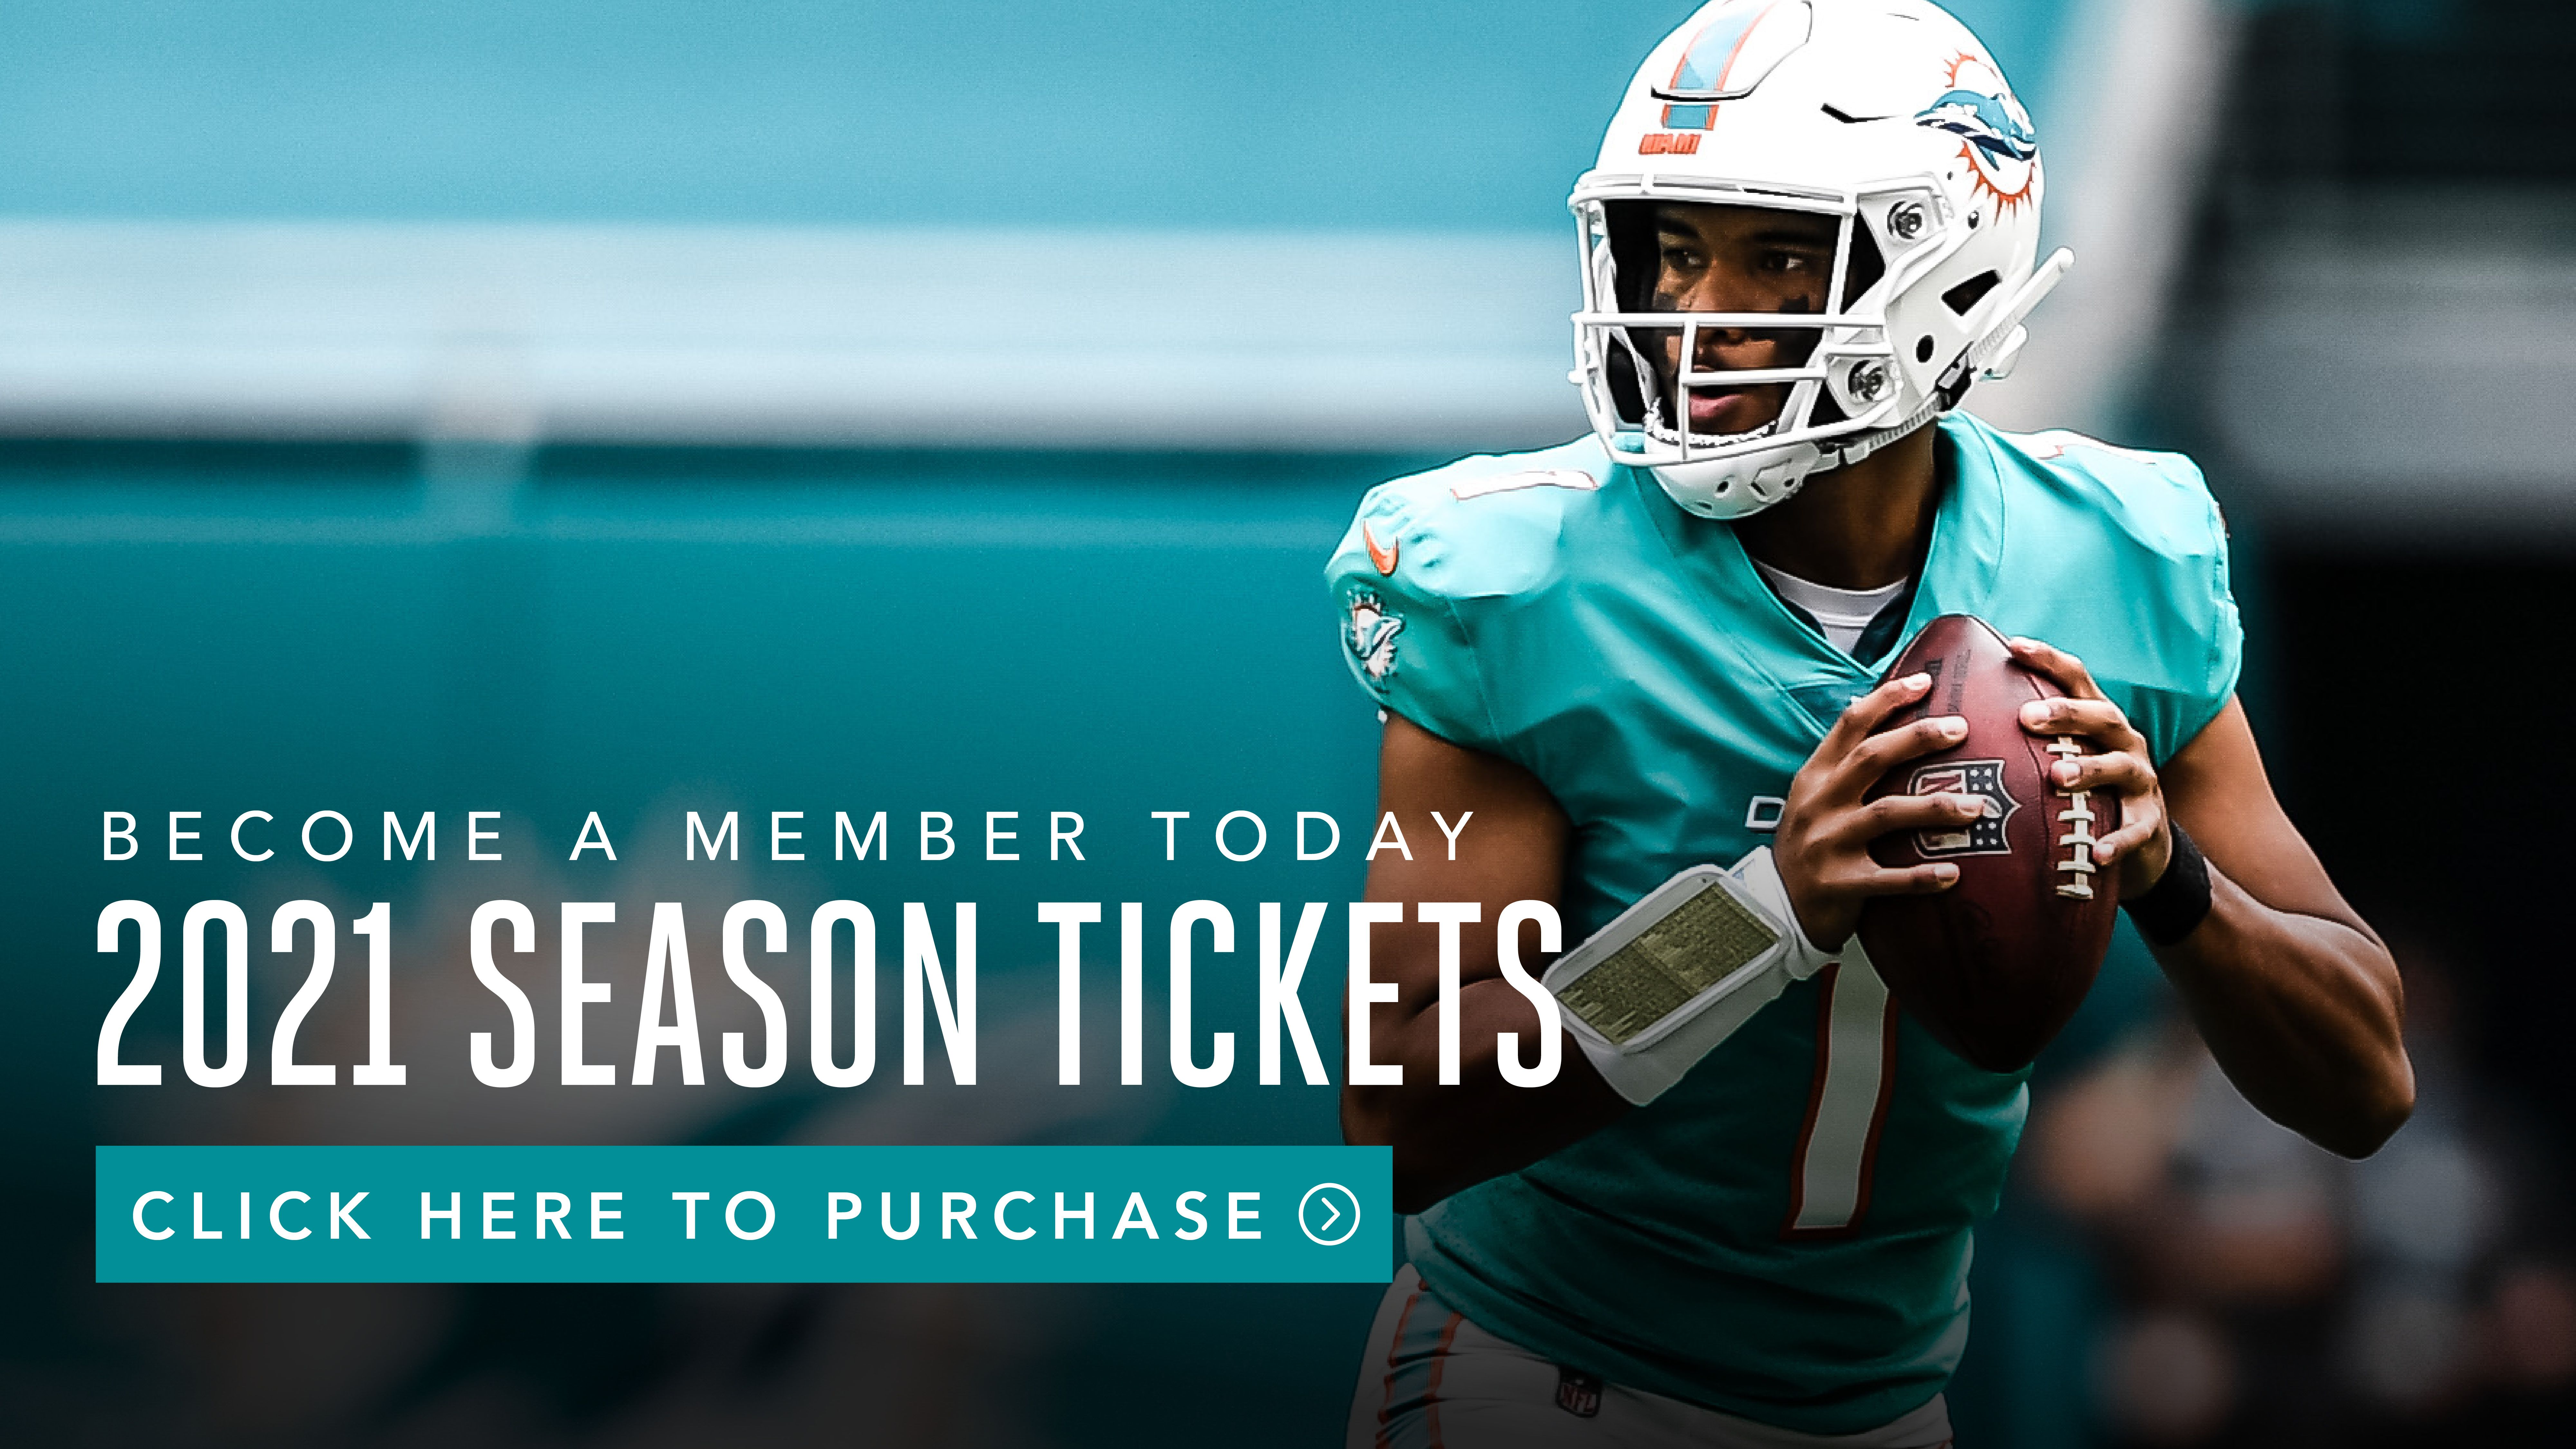 Click Here to Purchase Season Tickets